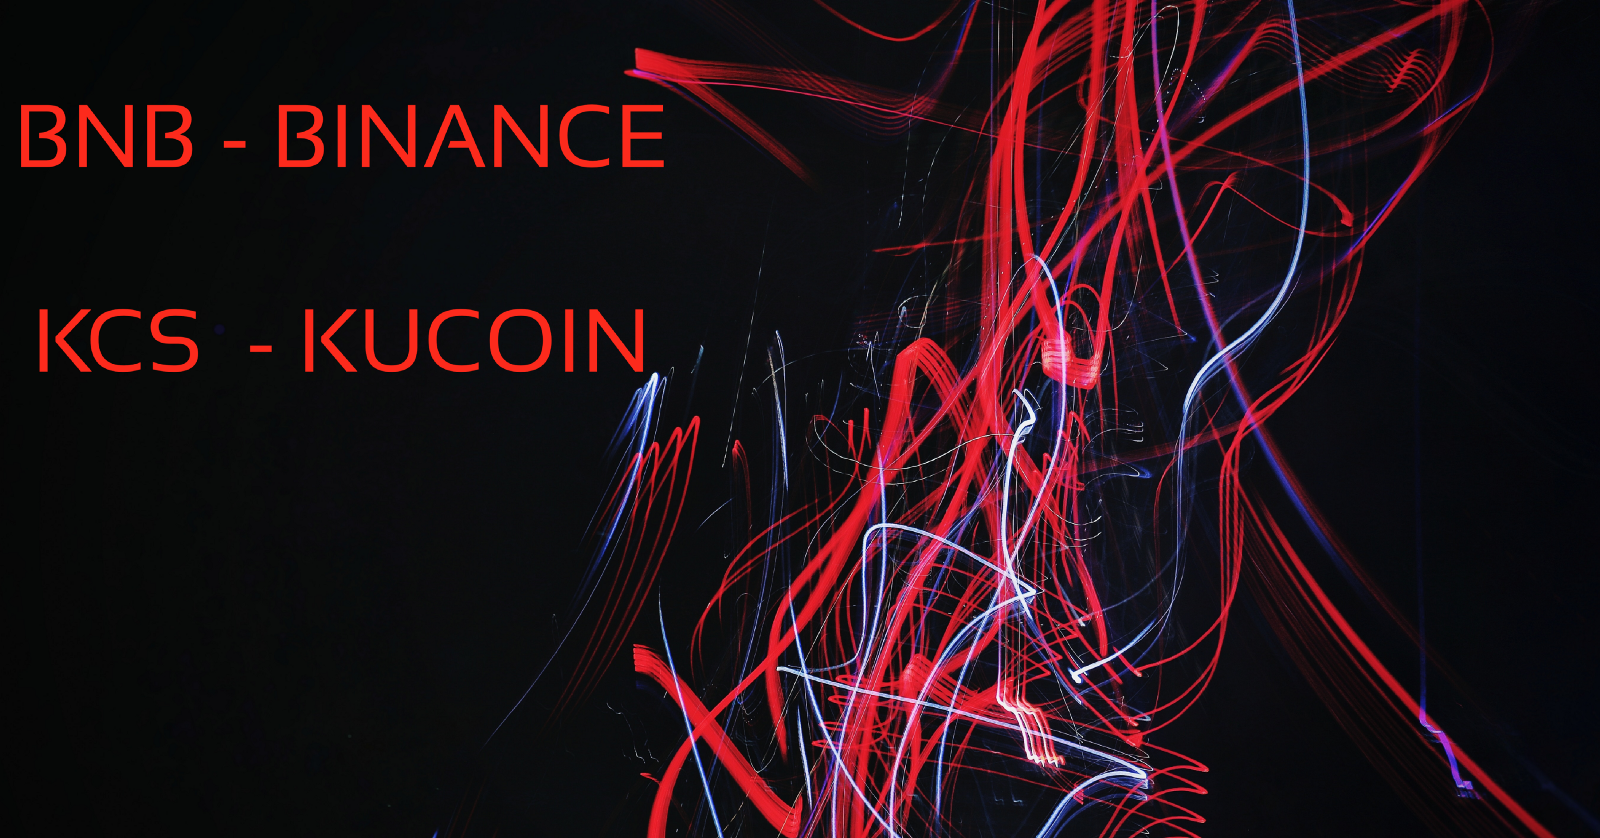 Forget referrals on binance kucoin check out these paycheck coins along with this another crucial advantage of binance is having its own coin called bnb which is solely used to pay transaction fees on each trade ccuart Image collections